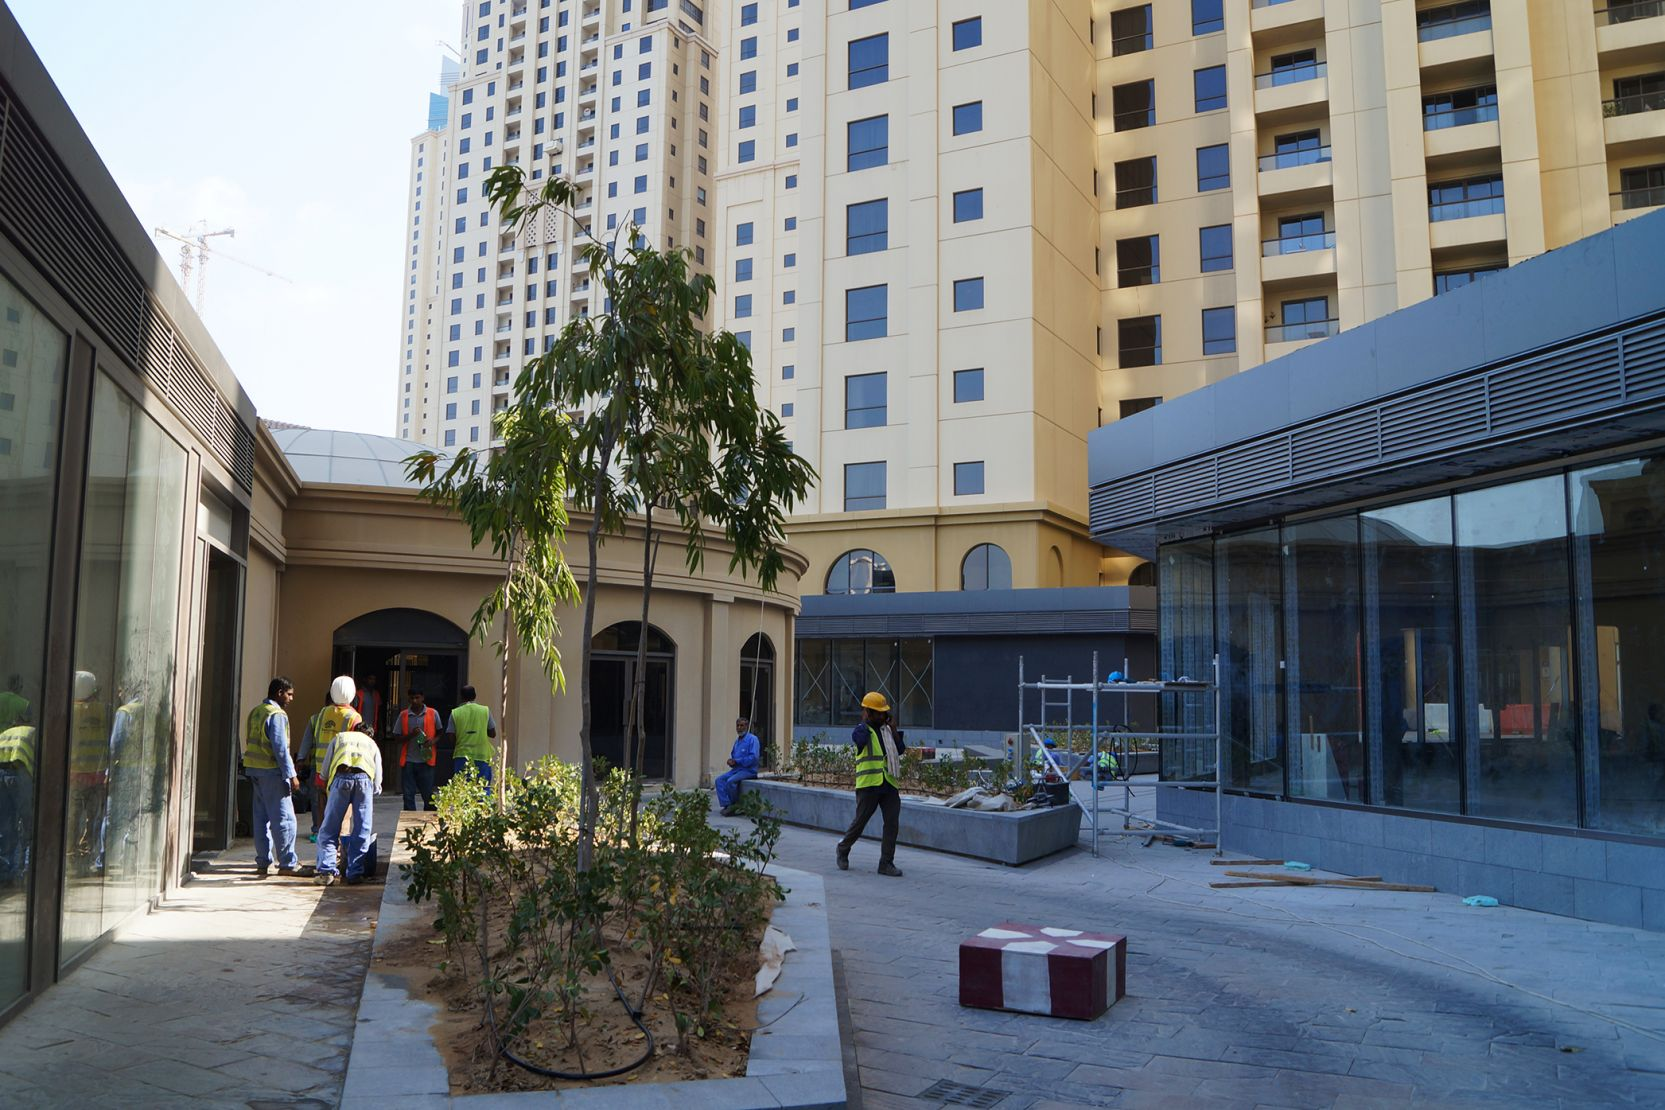 Jumeirah Beach Residence, Dubai, construction update October 2015